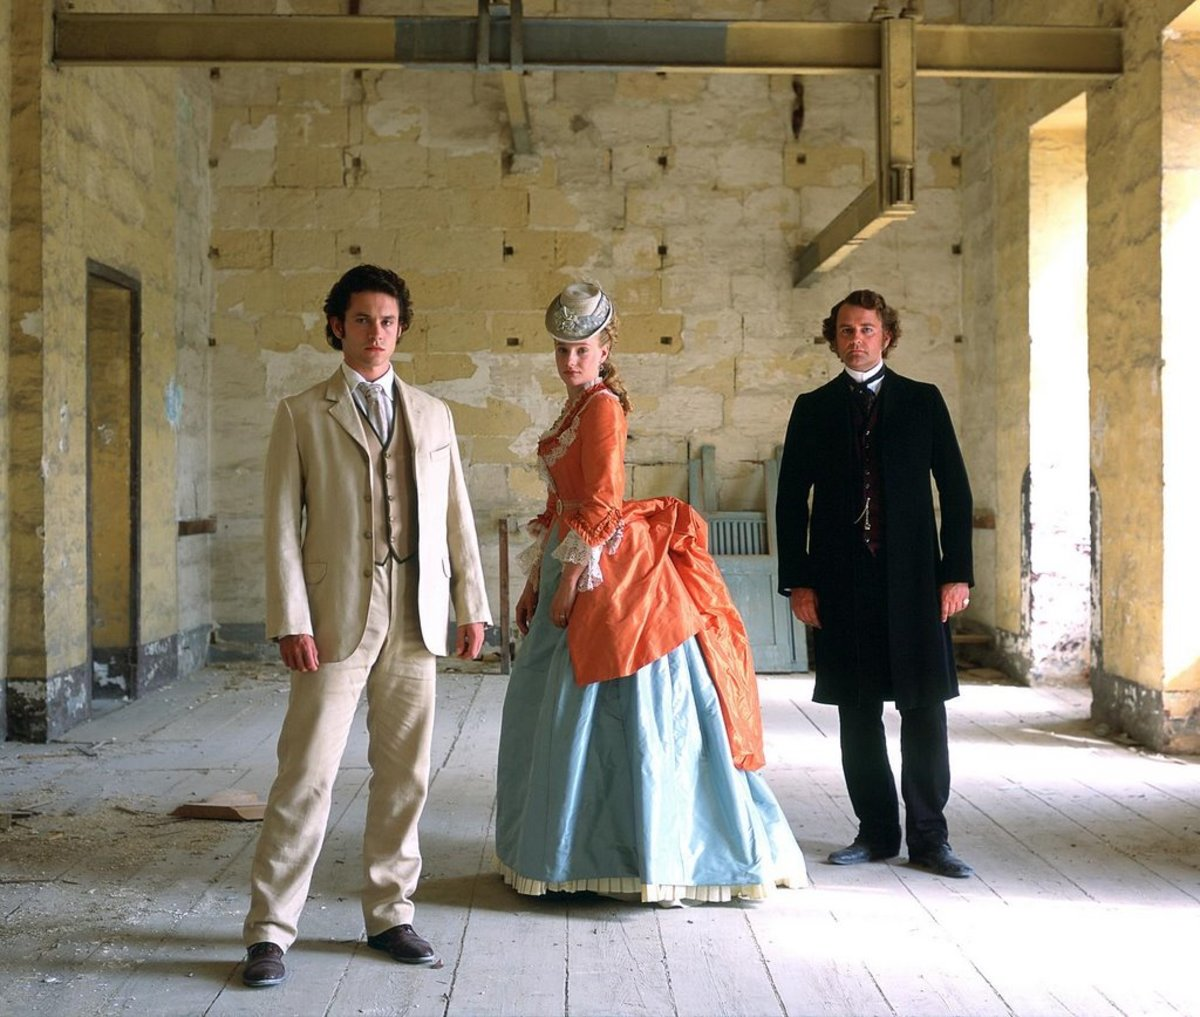 Cast of the film Daniel Deronda